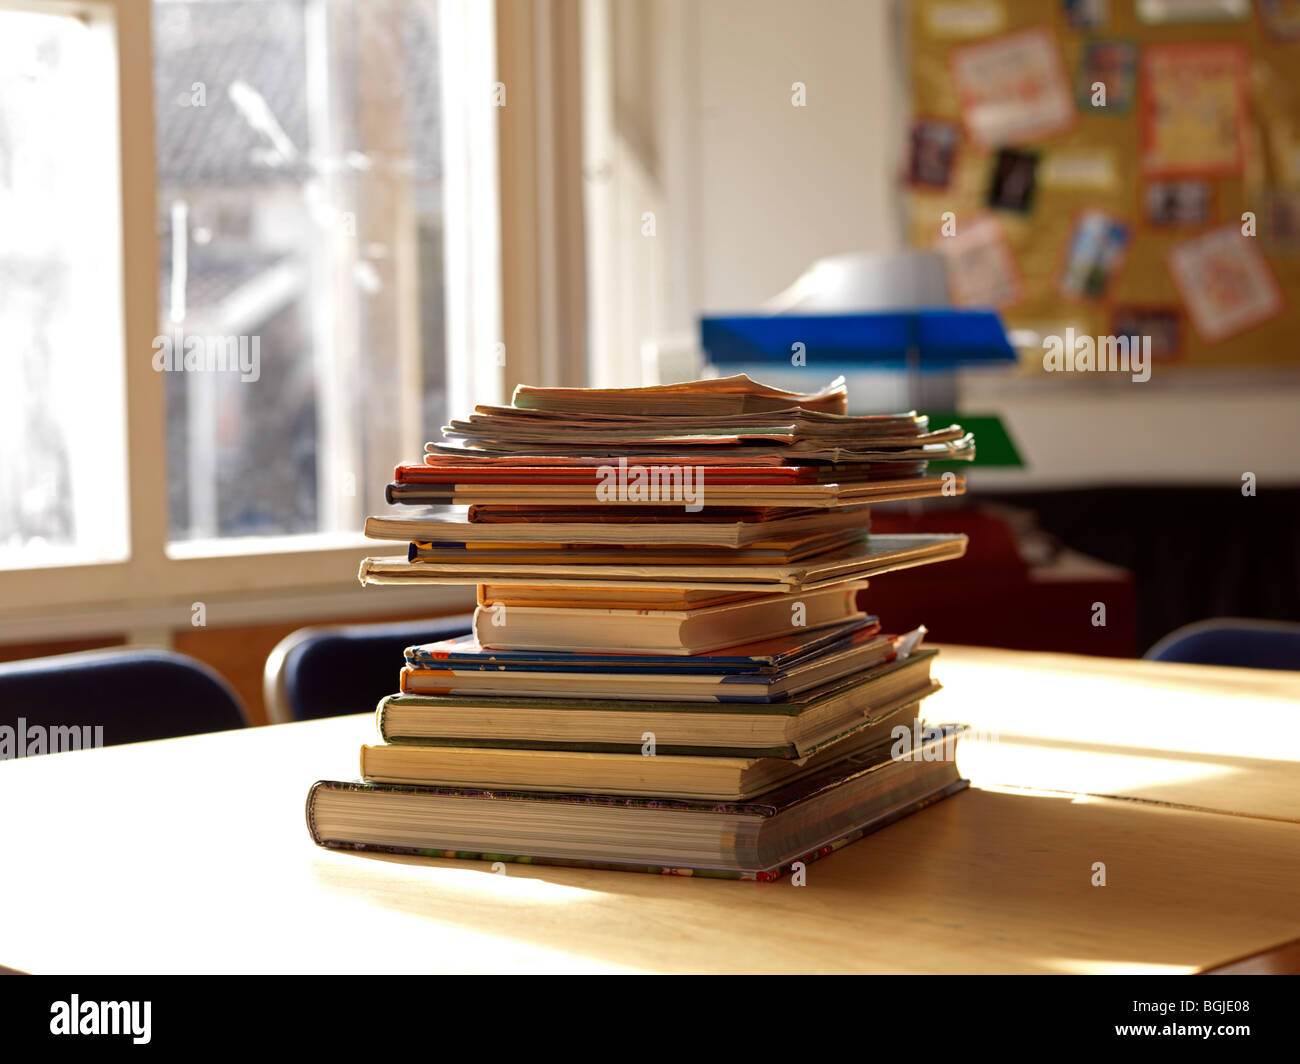 pile of books in classroom - Stock Image